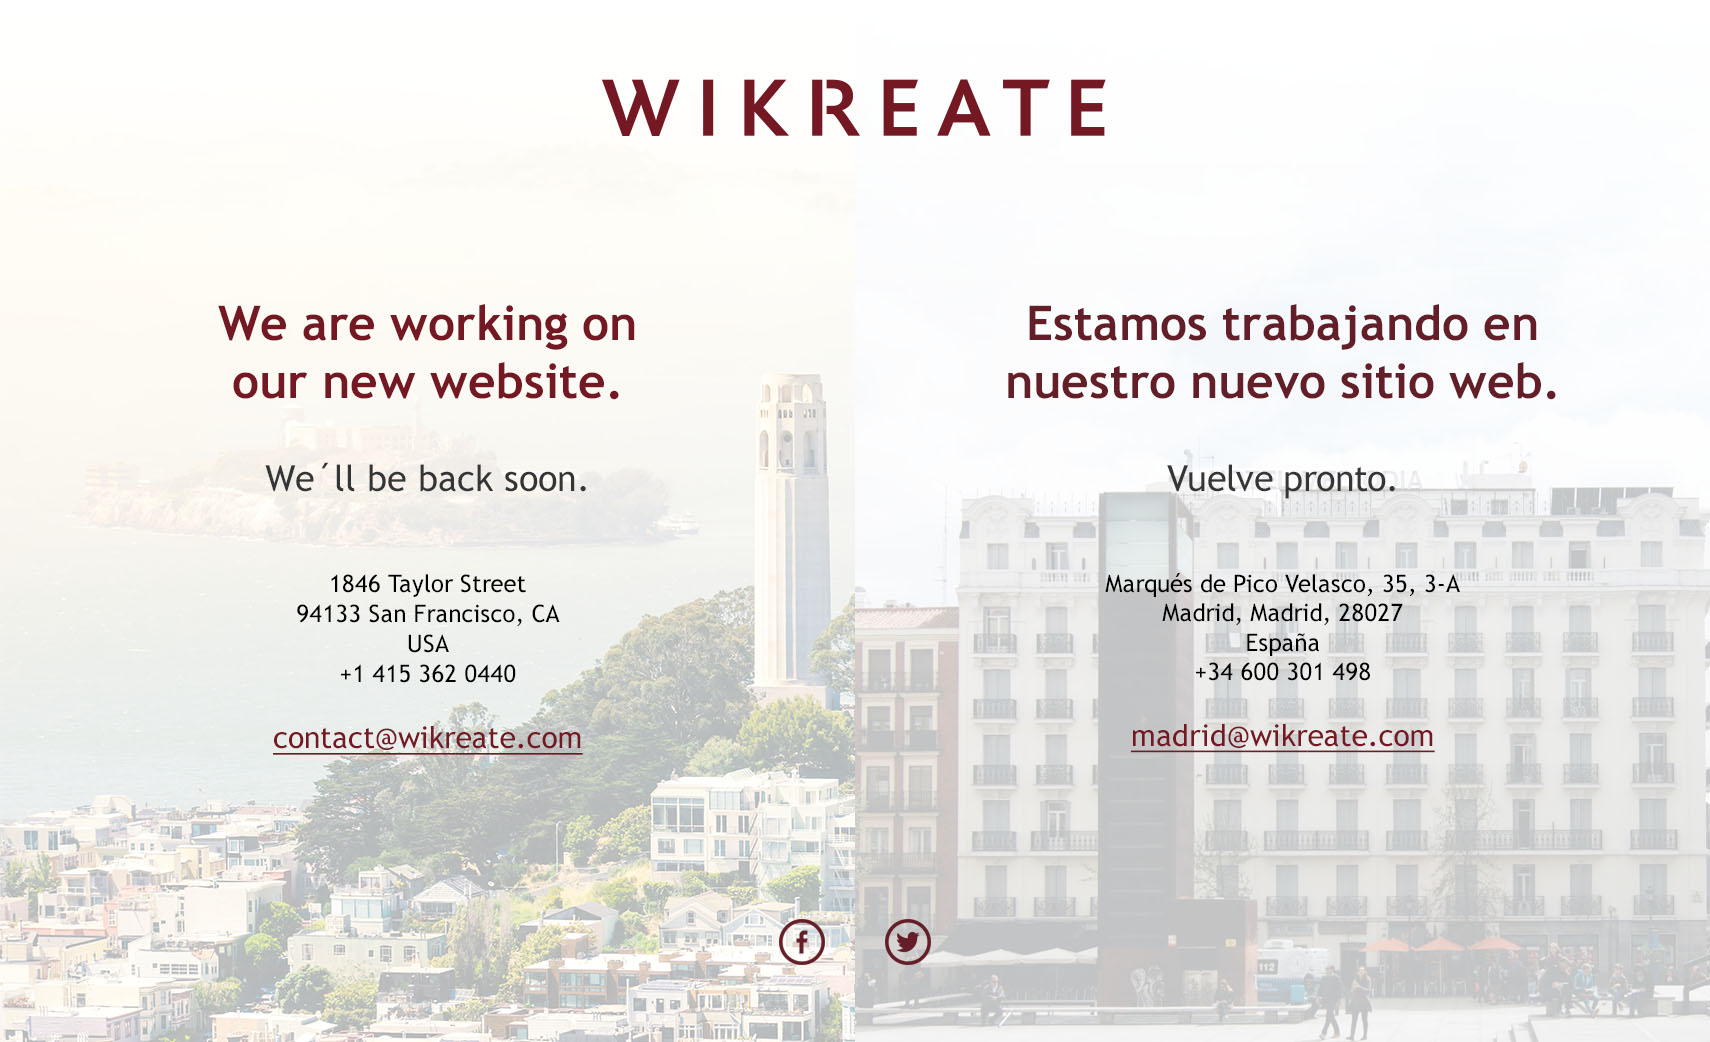 Wikreate